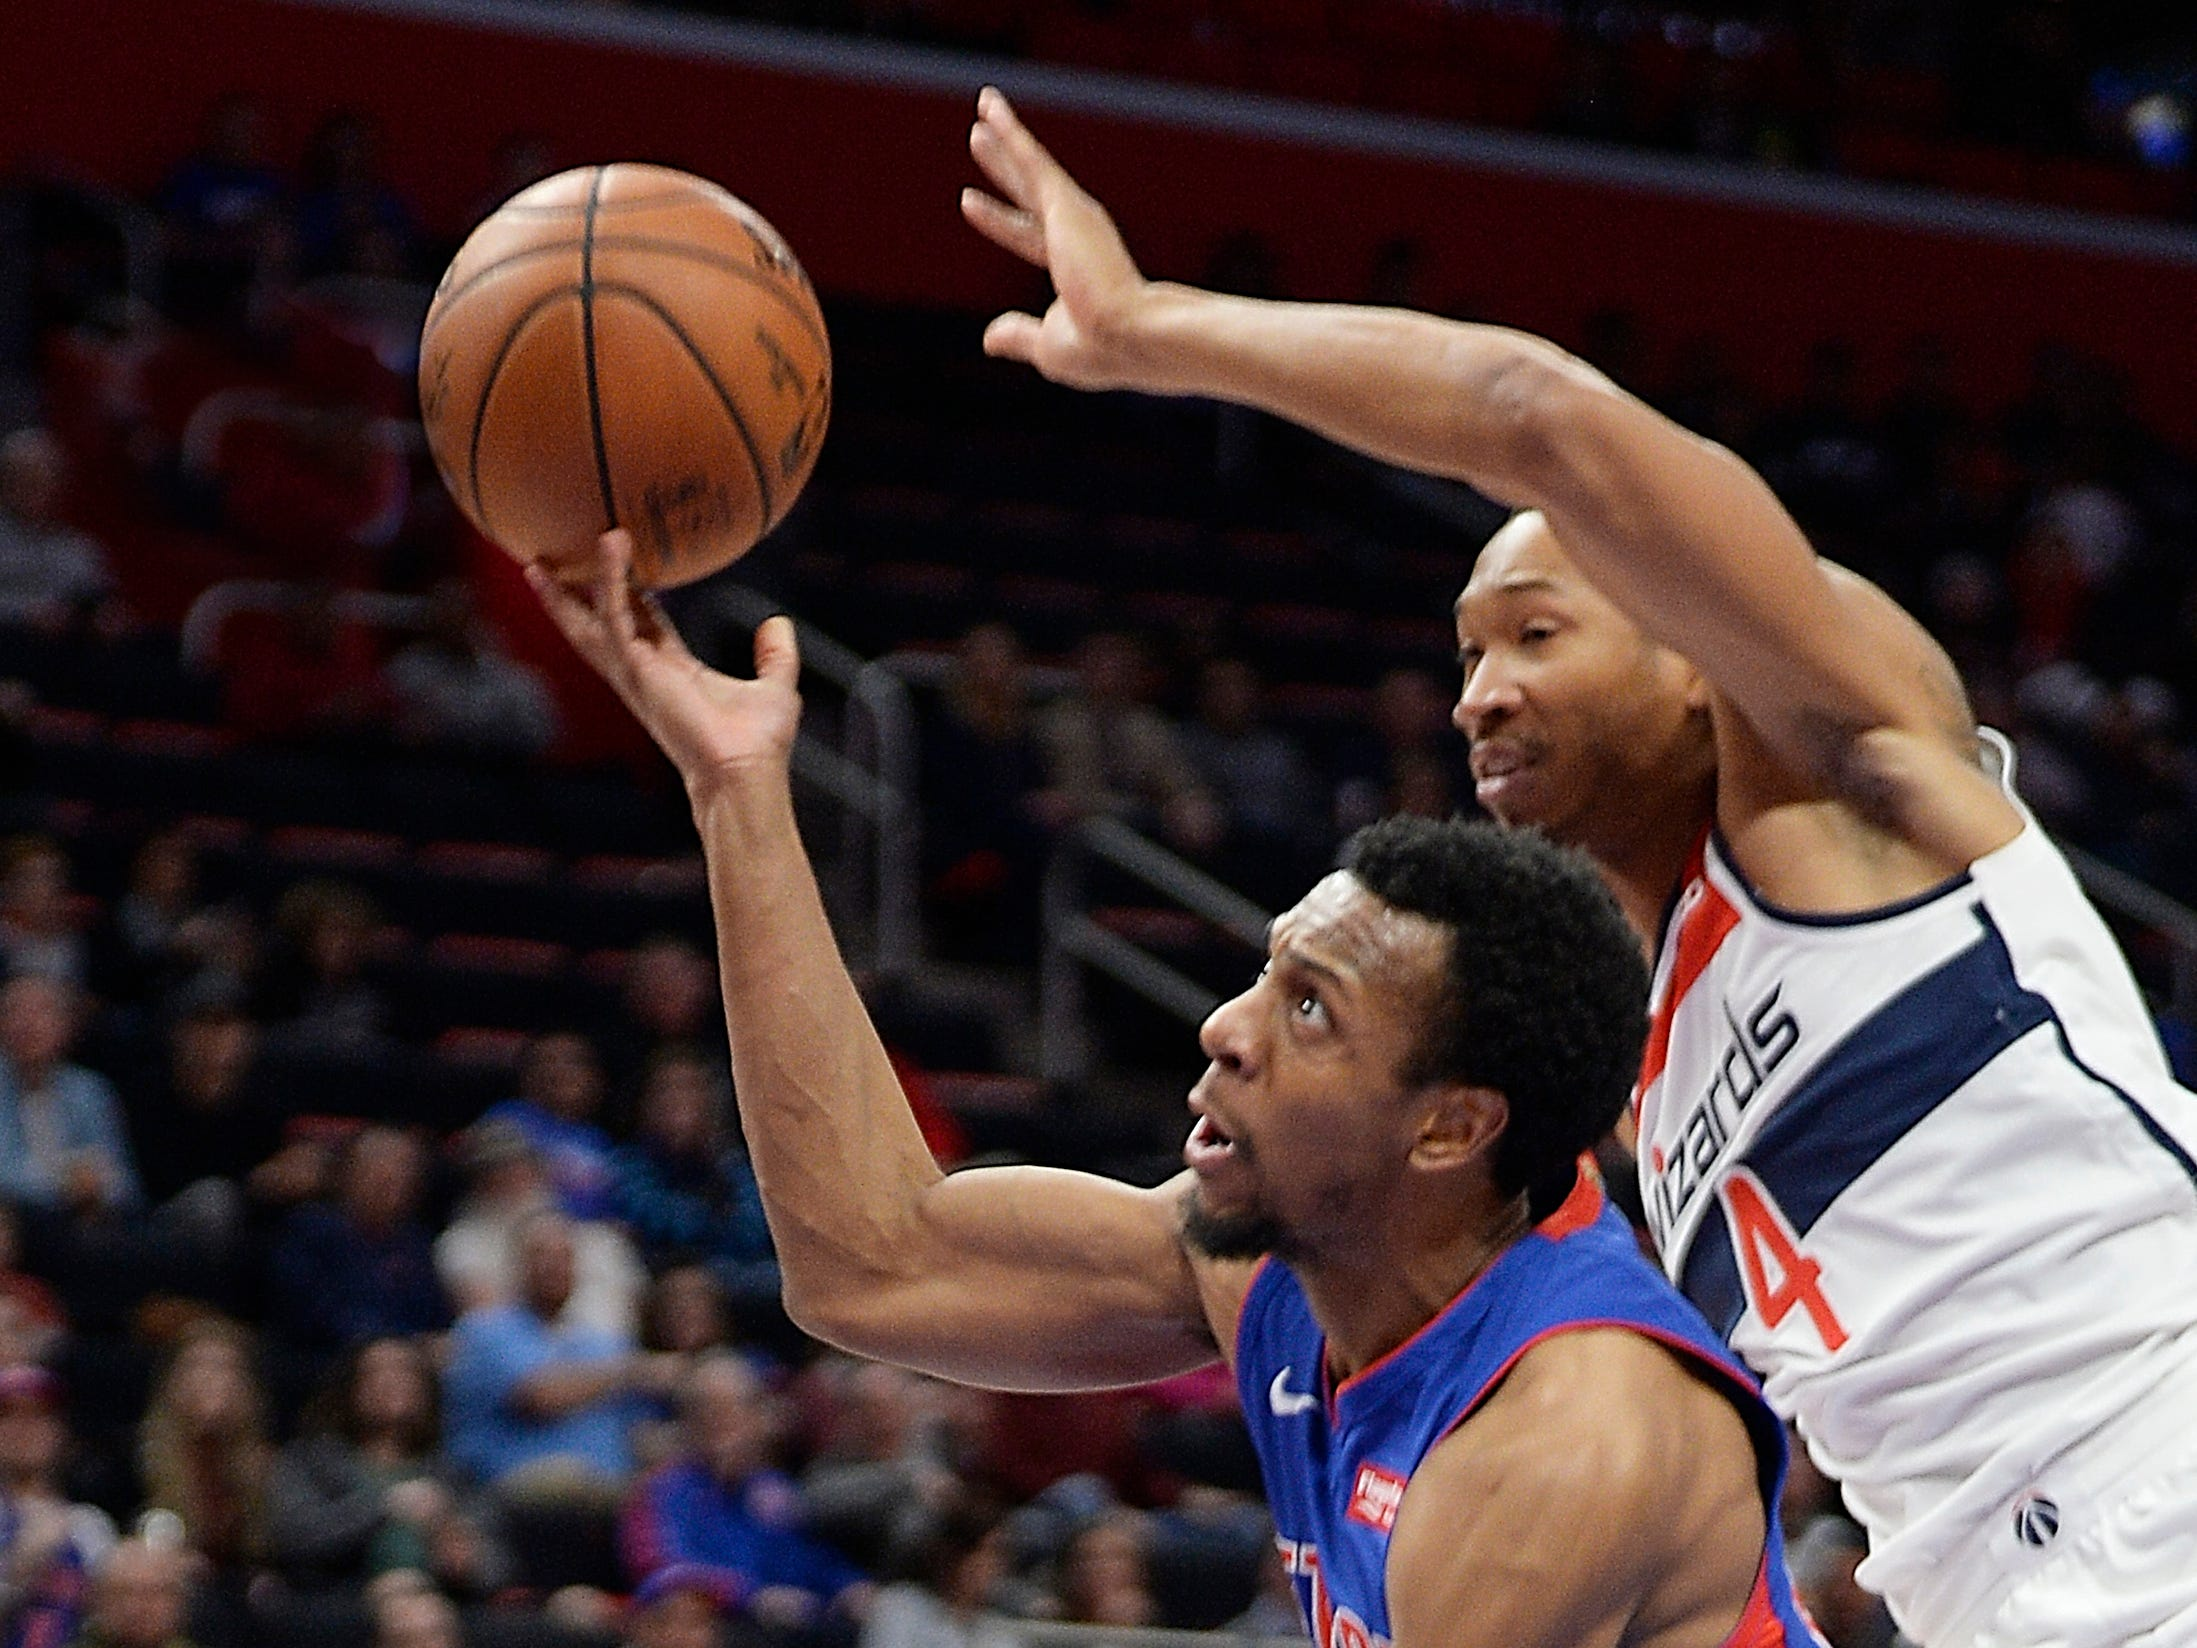 Pistons' Ish Smith shoots over Wizards' Wesley Johnson in the second quartrer. Smith was fouled on the play.